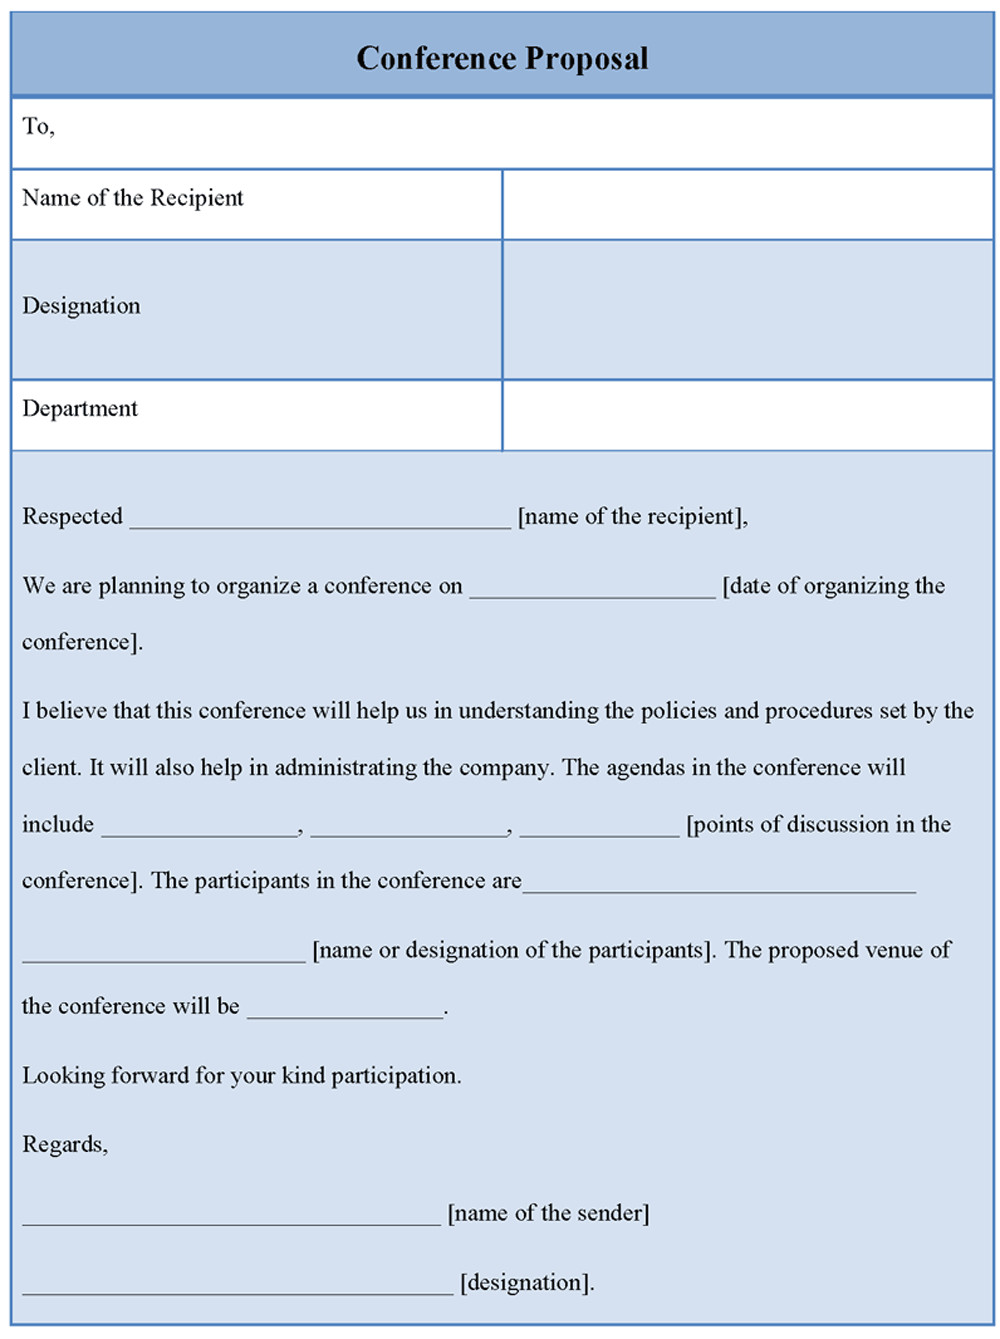 Meeting Rfp Template Proposal Template for Conference Example Of Conference